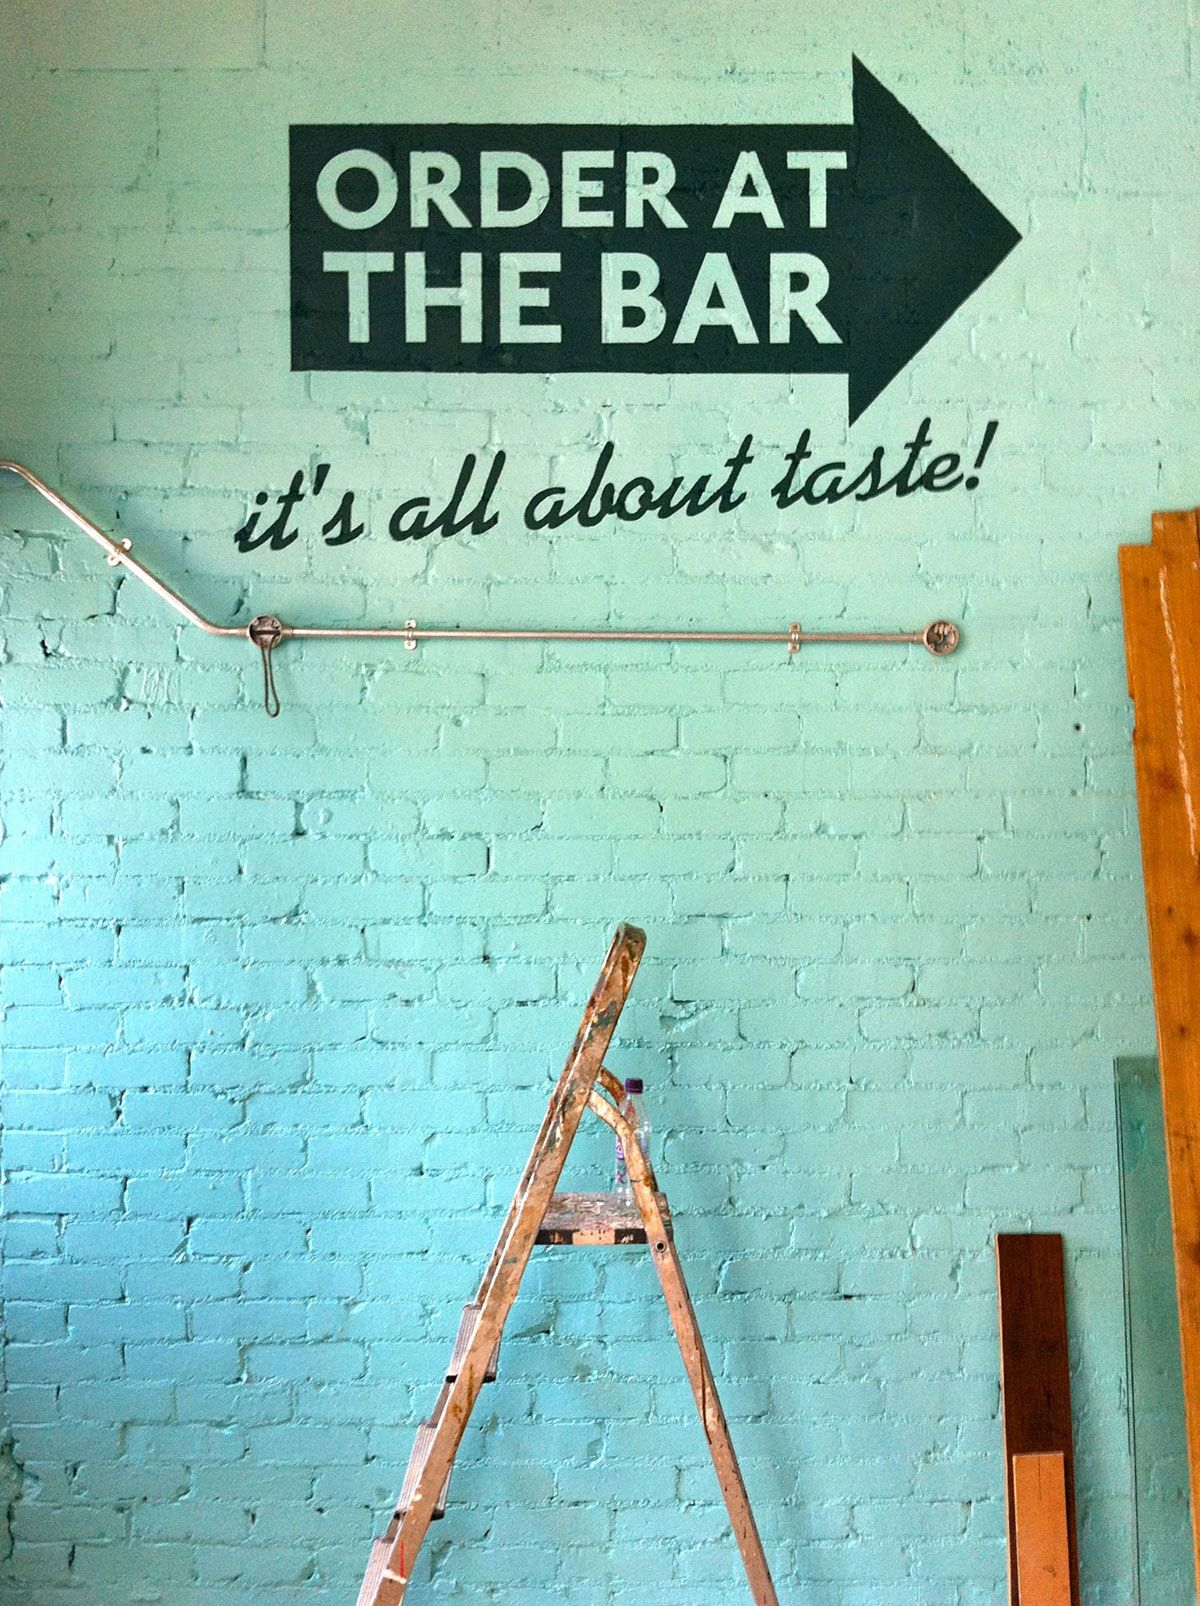 Restaurant and cafe wall art Ideas and inspiration for decor in